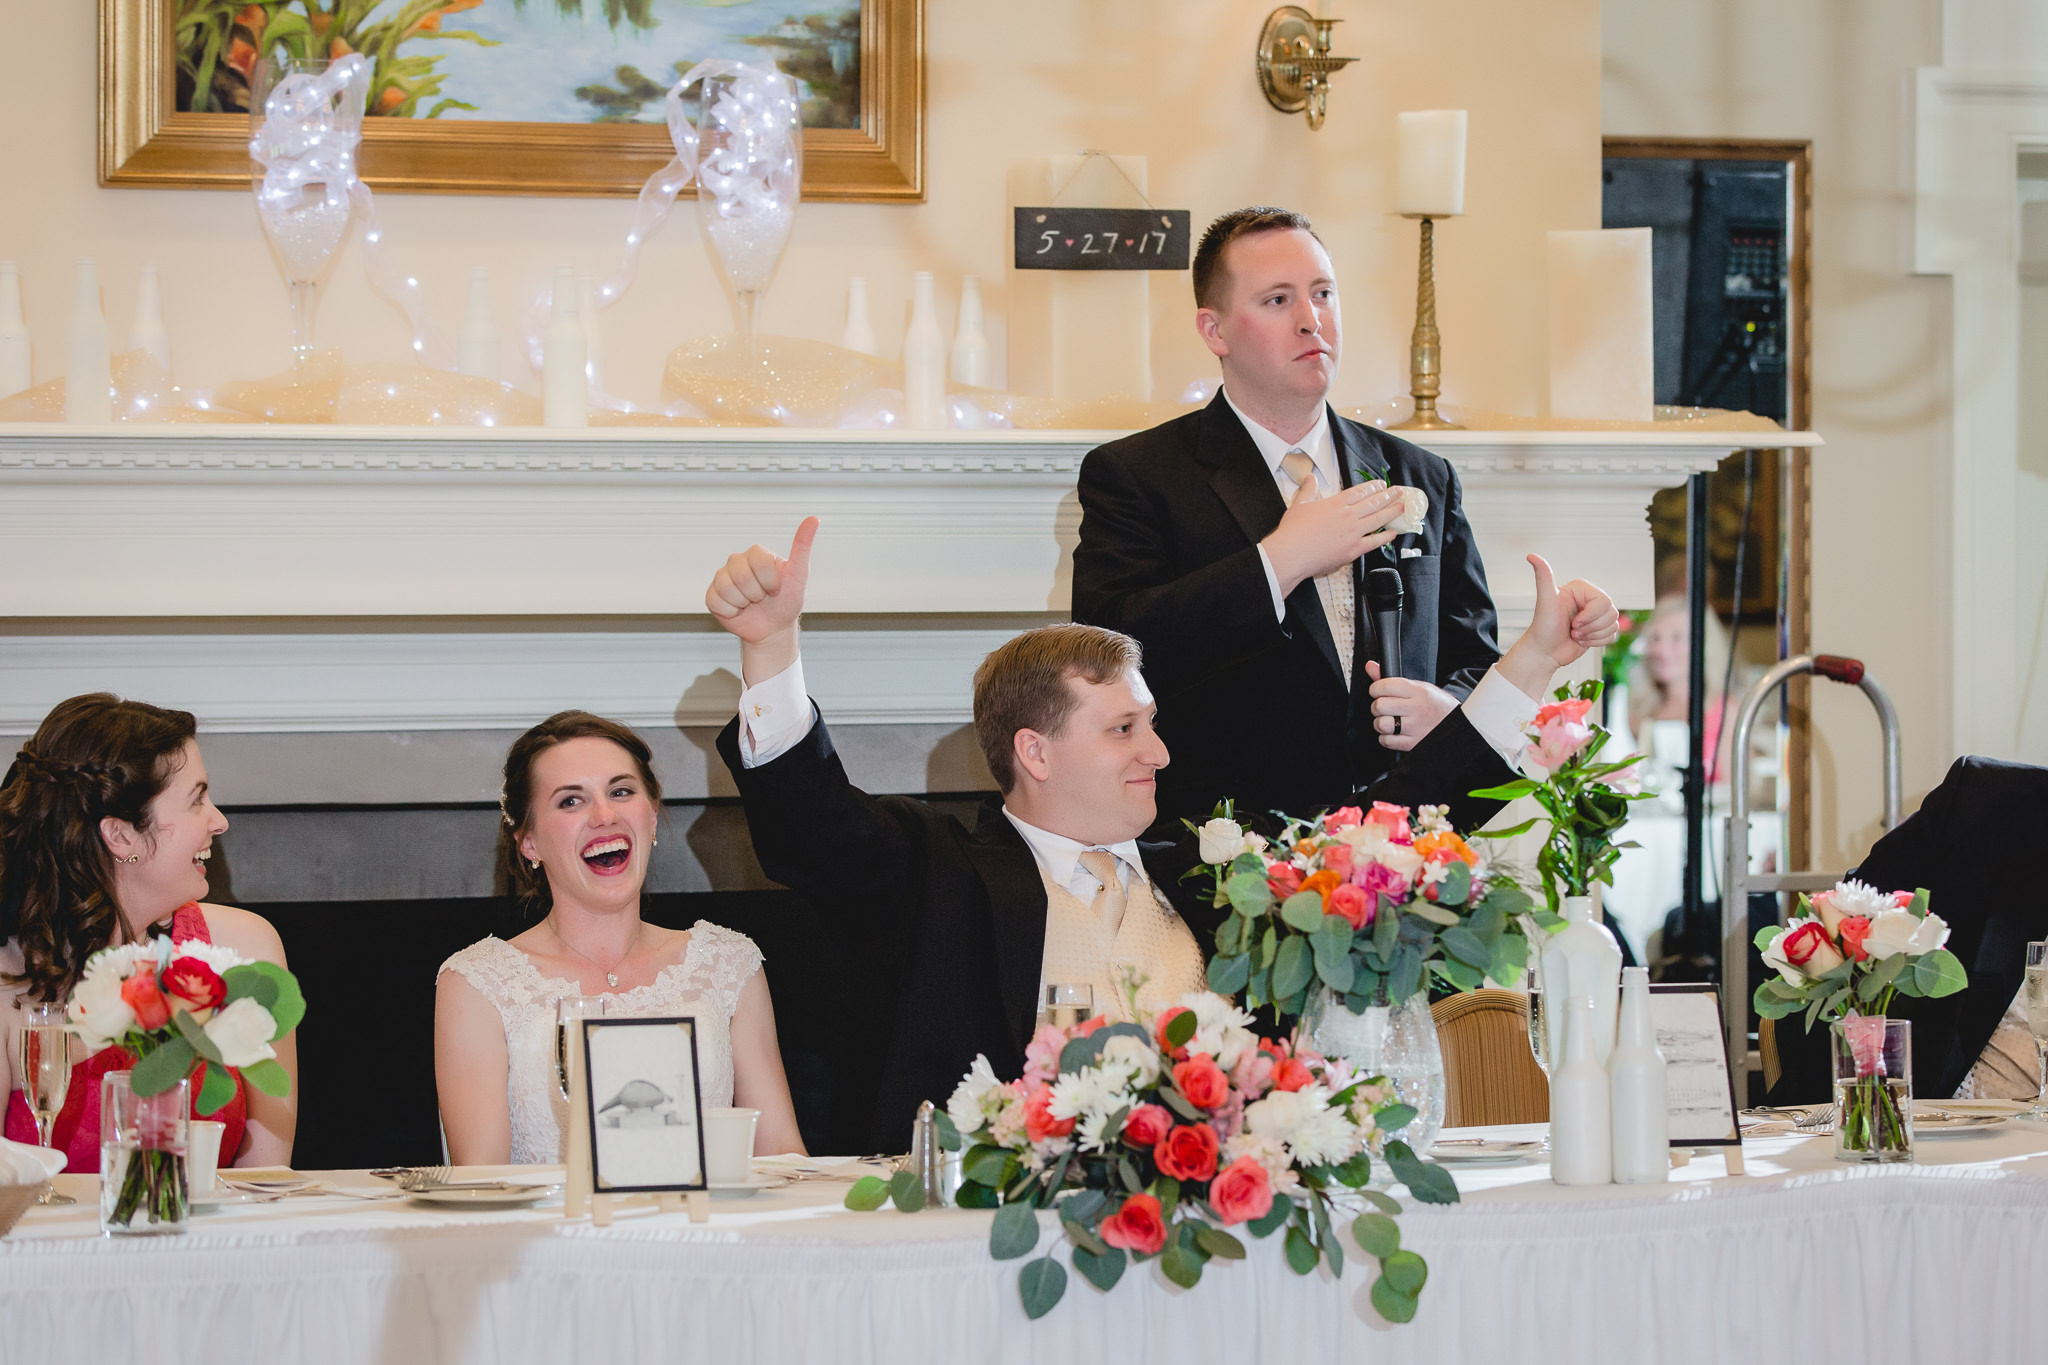 Best man toasts the bride & groom at Shannopin Country Club